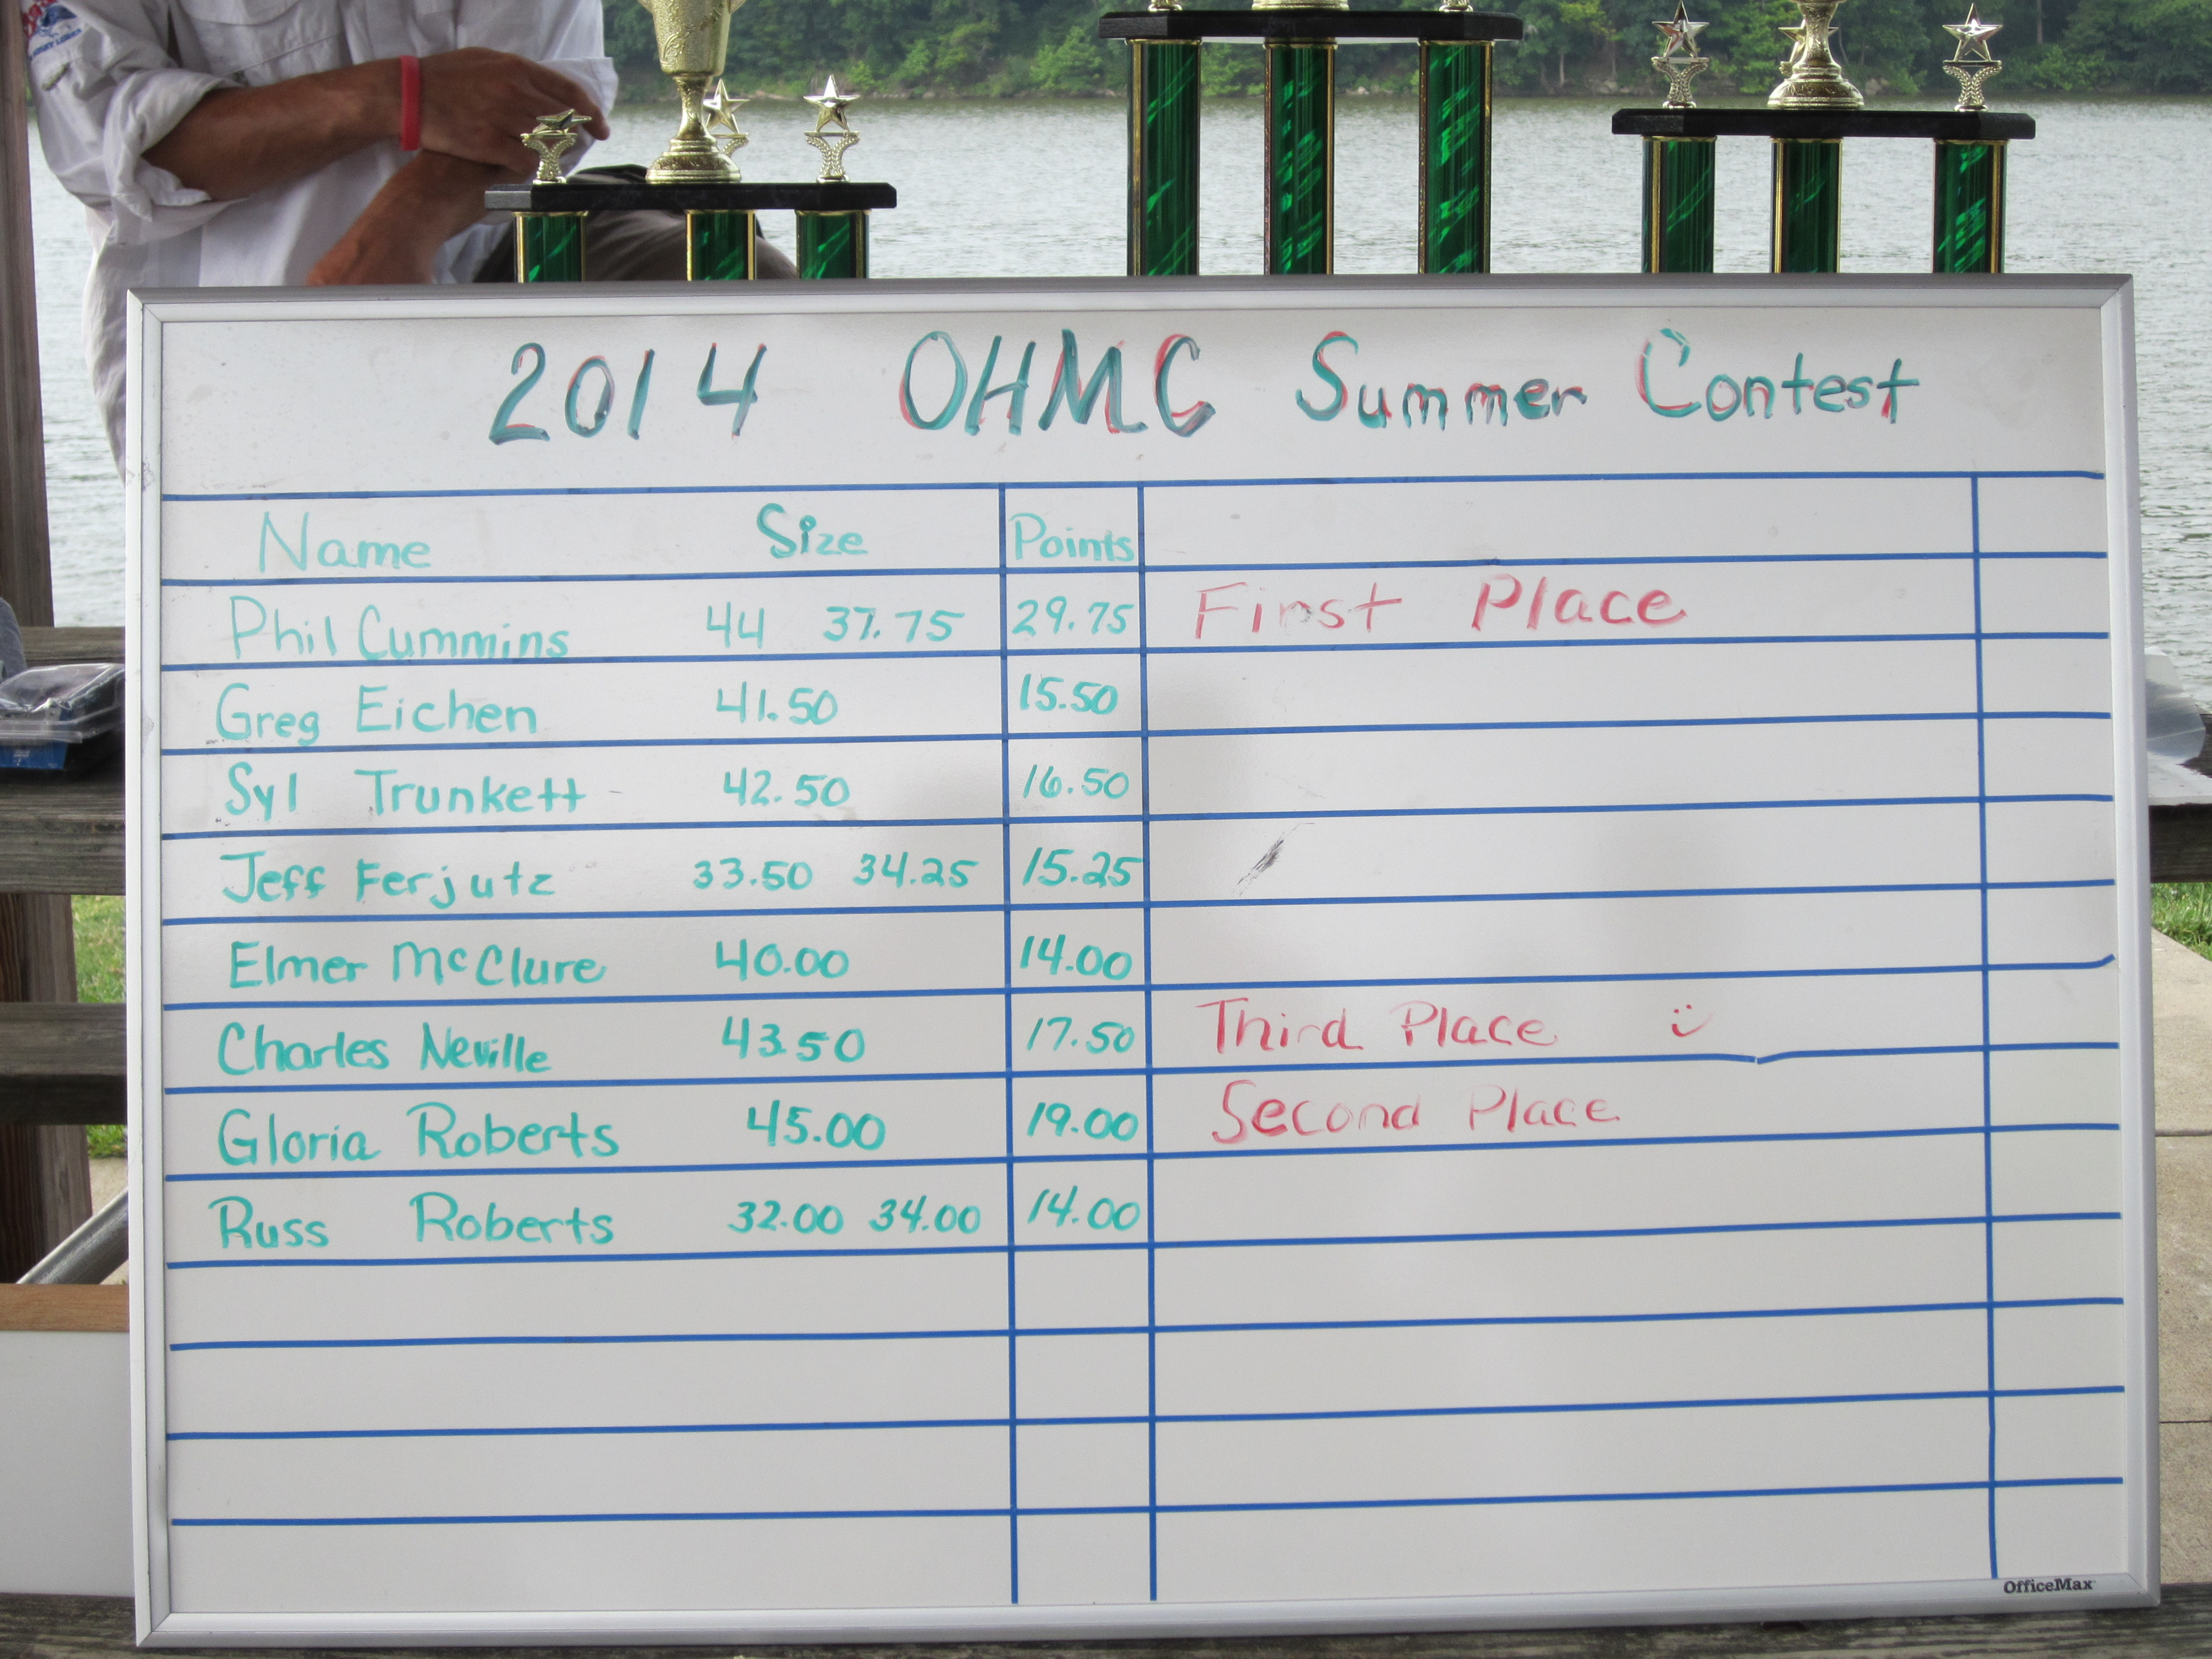 2014 OHMC Summer Contest - Final Results